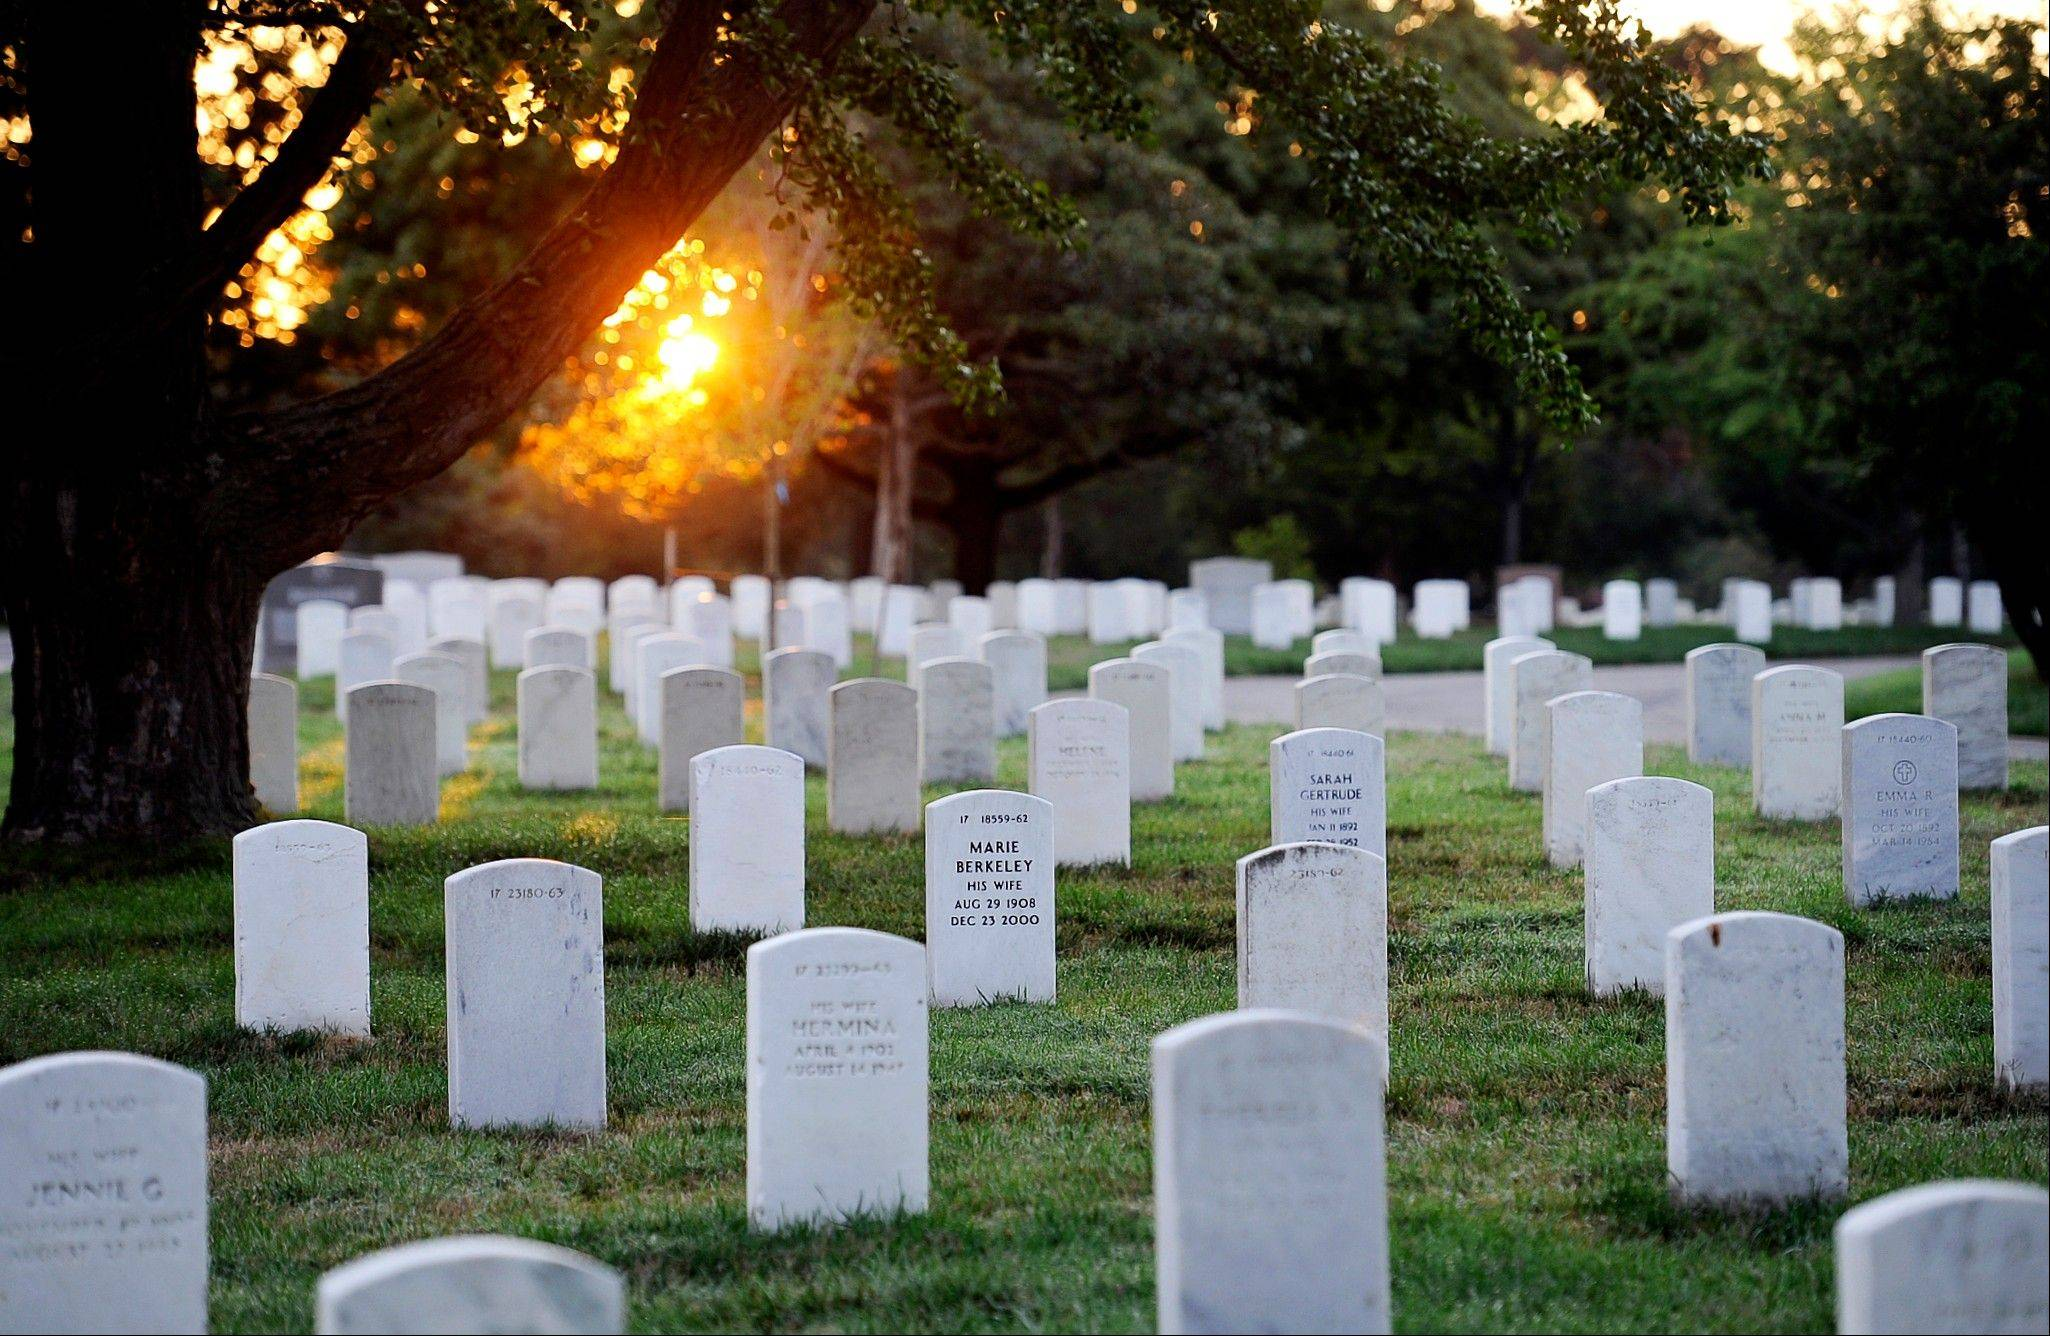 The Army Old Guard Task Force Christman photographed and cataloged more than 219,00 grave markers and the front of more than 43,000 sets of cremated remains at Arlington National Cemetery in Arlington, Va.